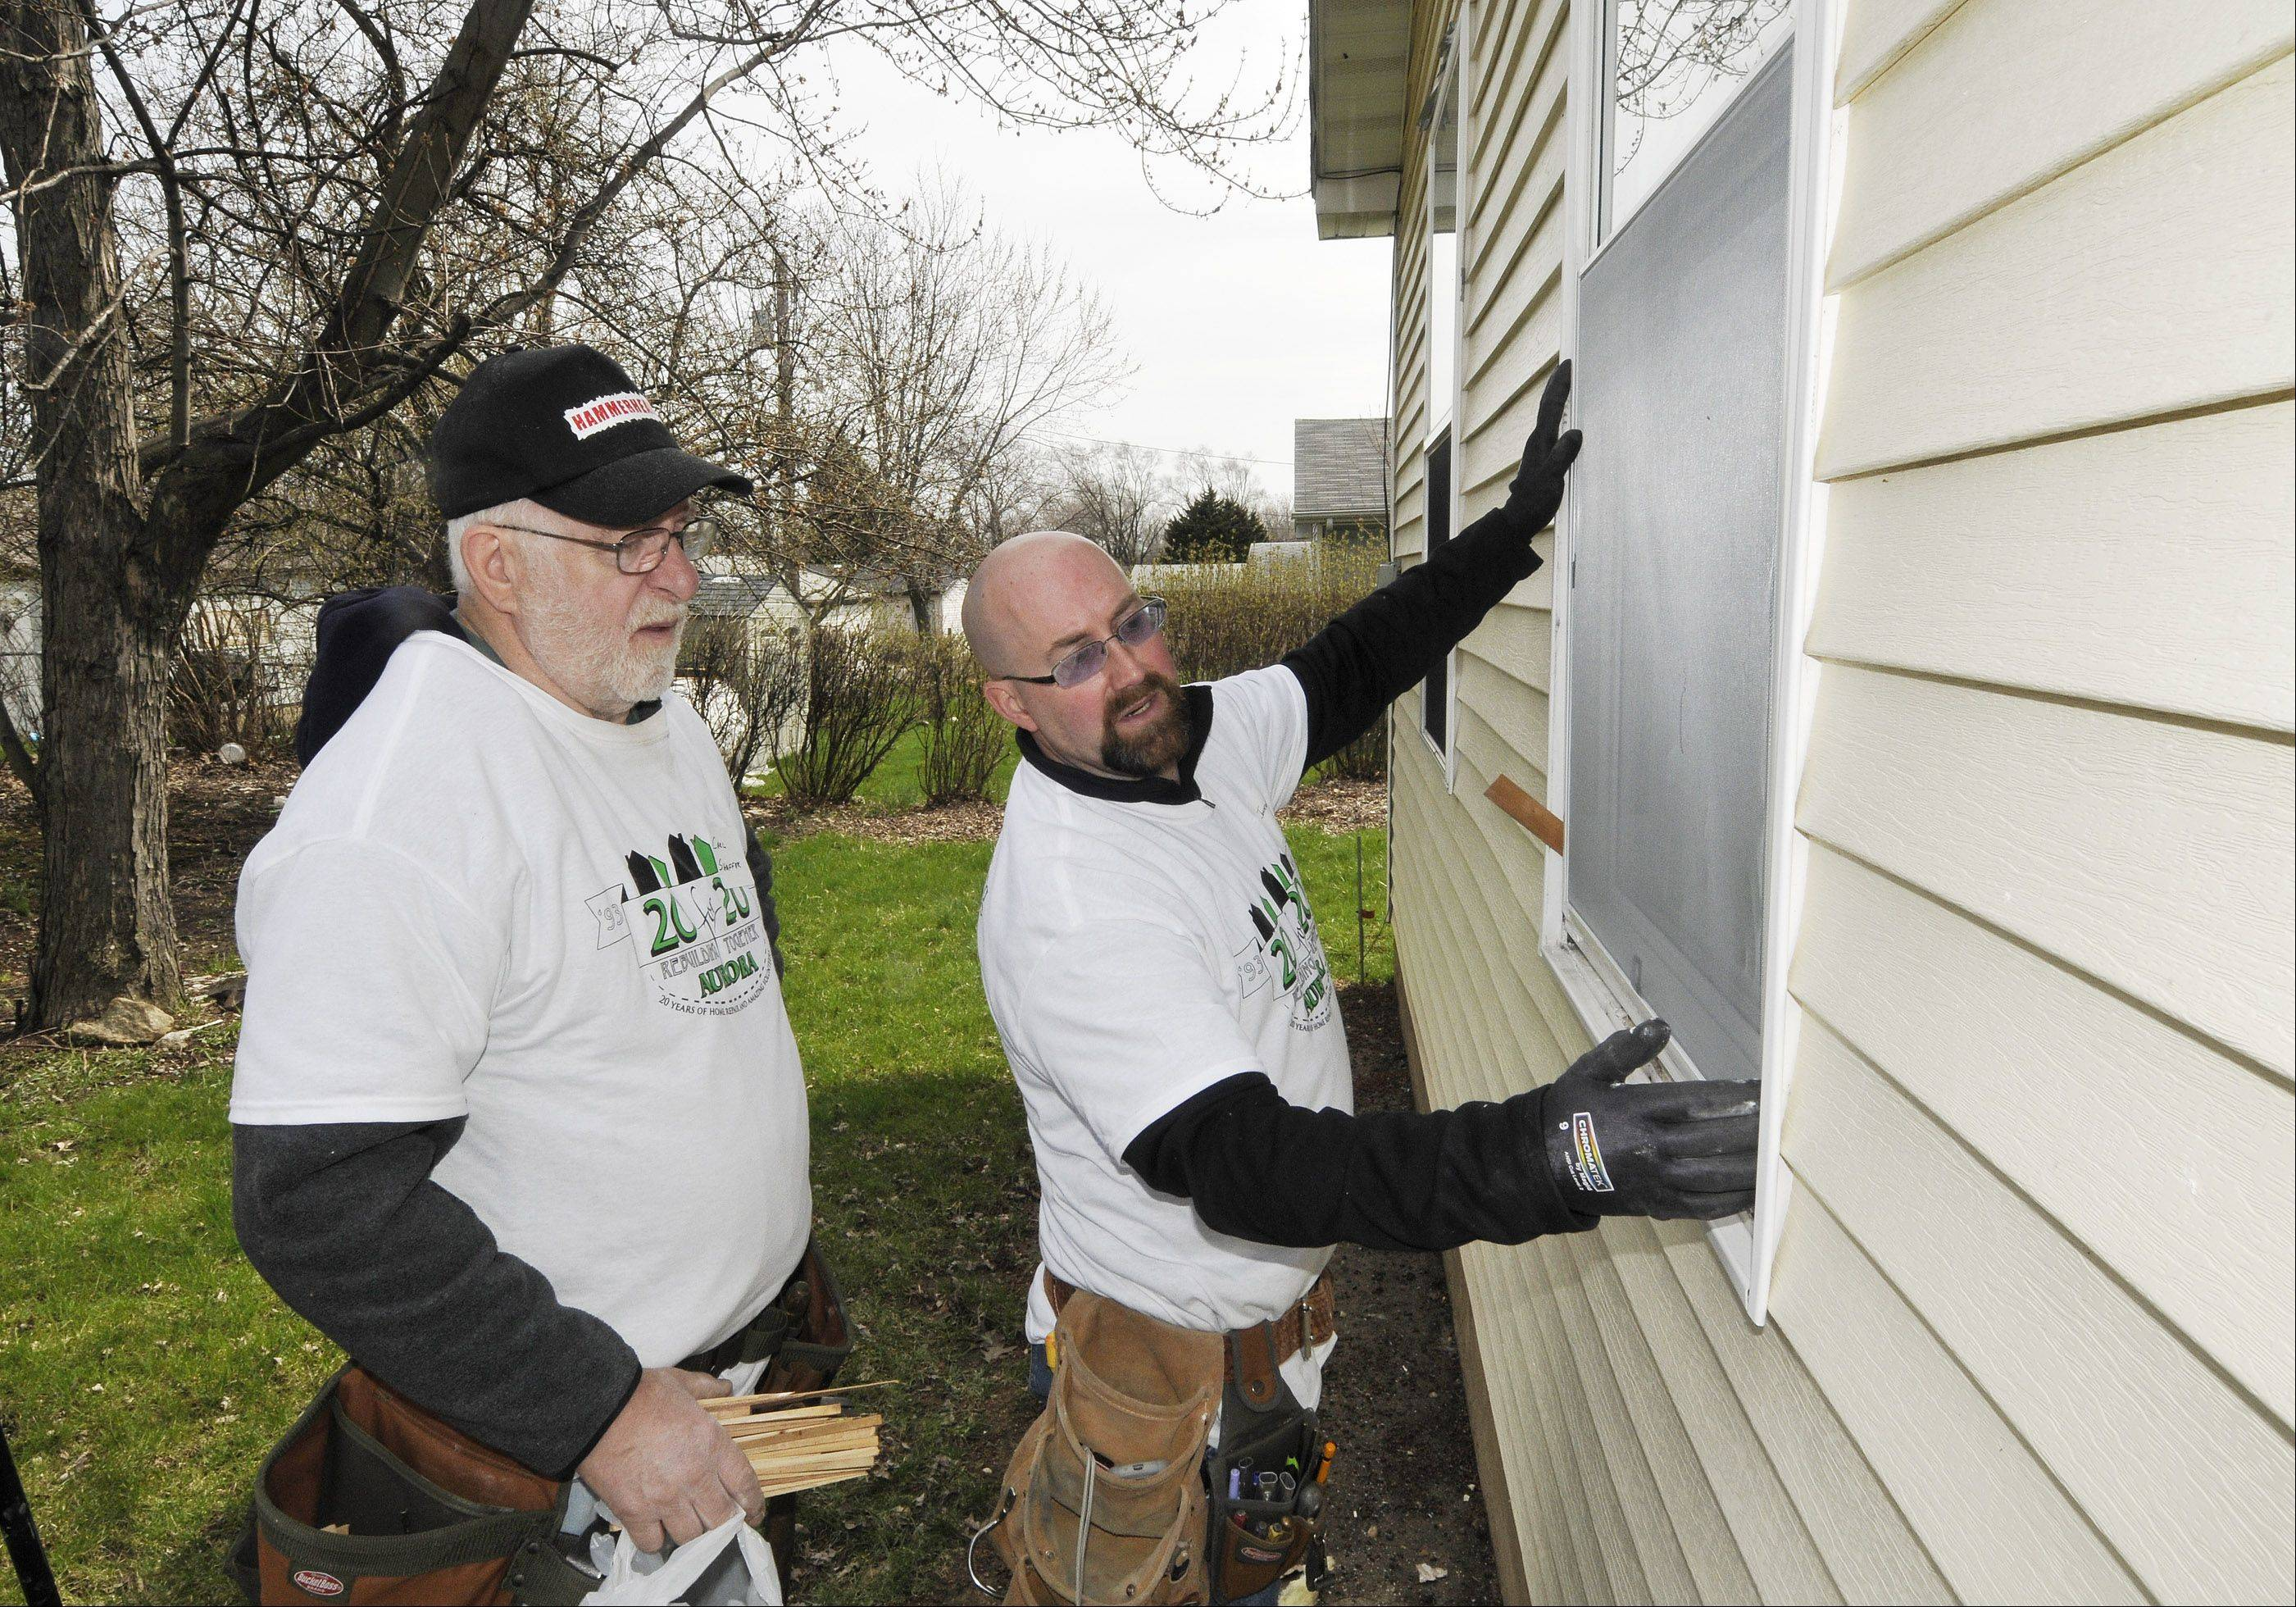 Rebuilding Together Aurora volunteers Carl Shaffer and Keith Johnson from Community Christian Church in Naperville install a new window Friday on a home in Aurora�s Pattersonville neighborhood, replacing an old window pierced by a bullet. More than 800 volunteers are repairing about 20 homes Friday and Saturday during Rebuilding Together Aurora�s 20th annual April home repair event.